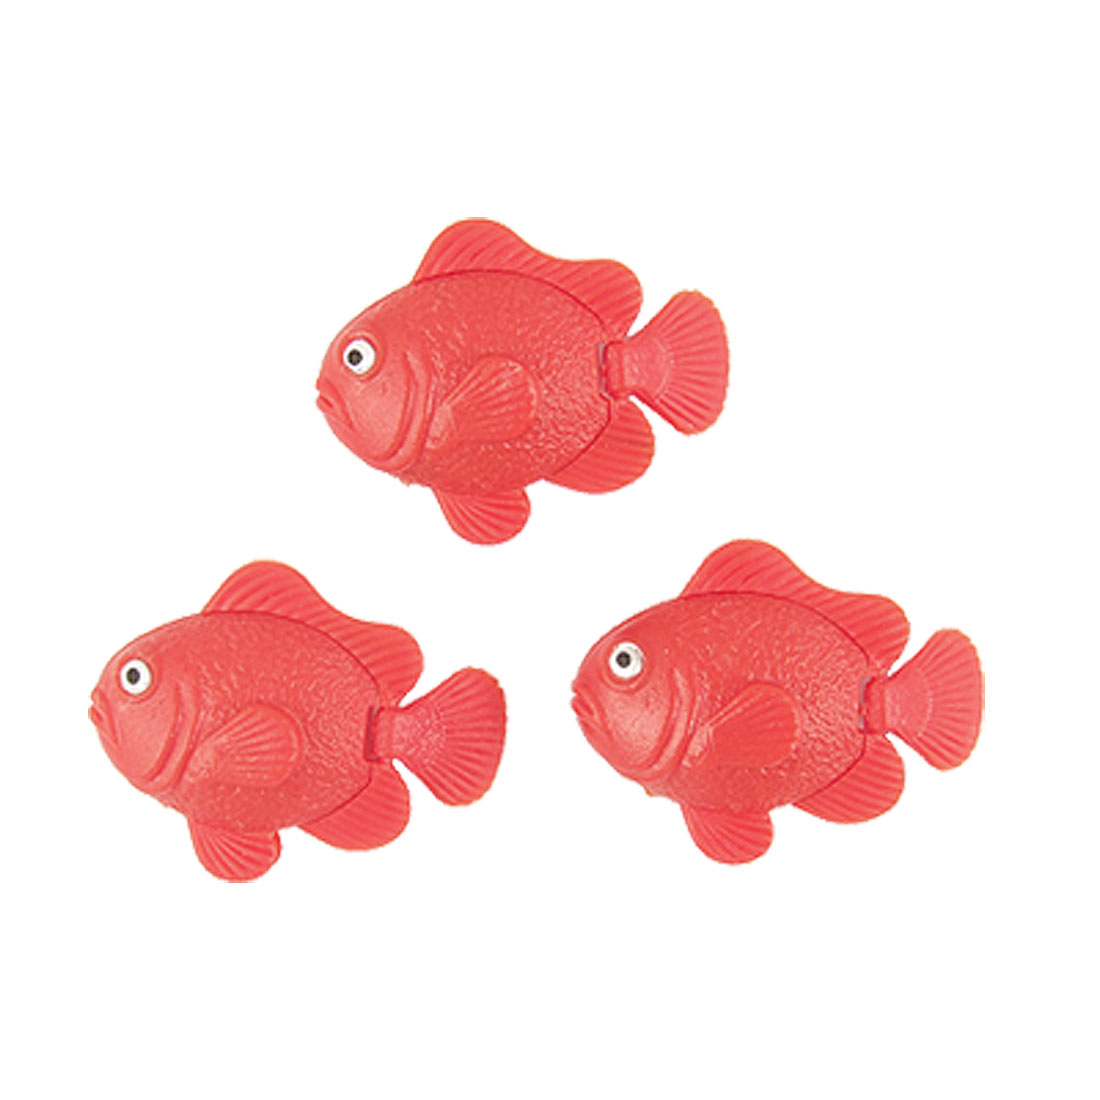 Red Plastic Carp Design Swimming Fish Decor 3 Pcs for Aquarium